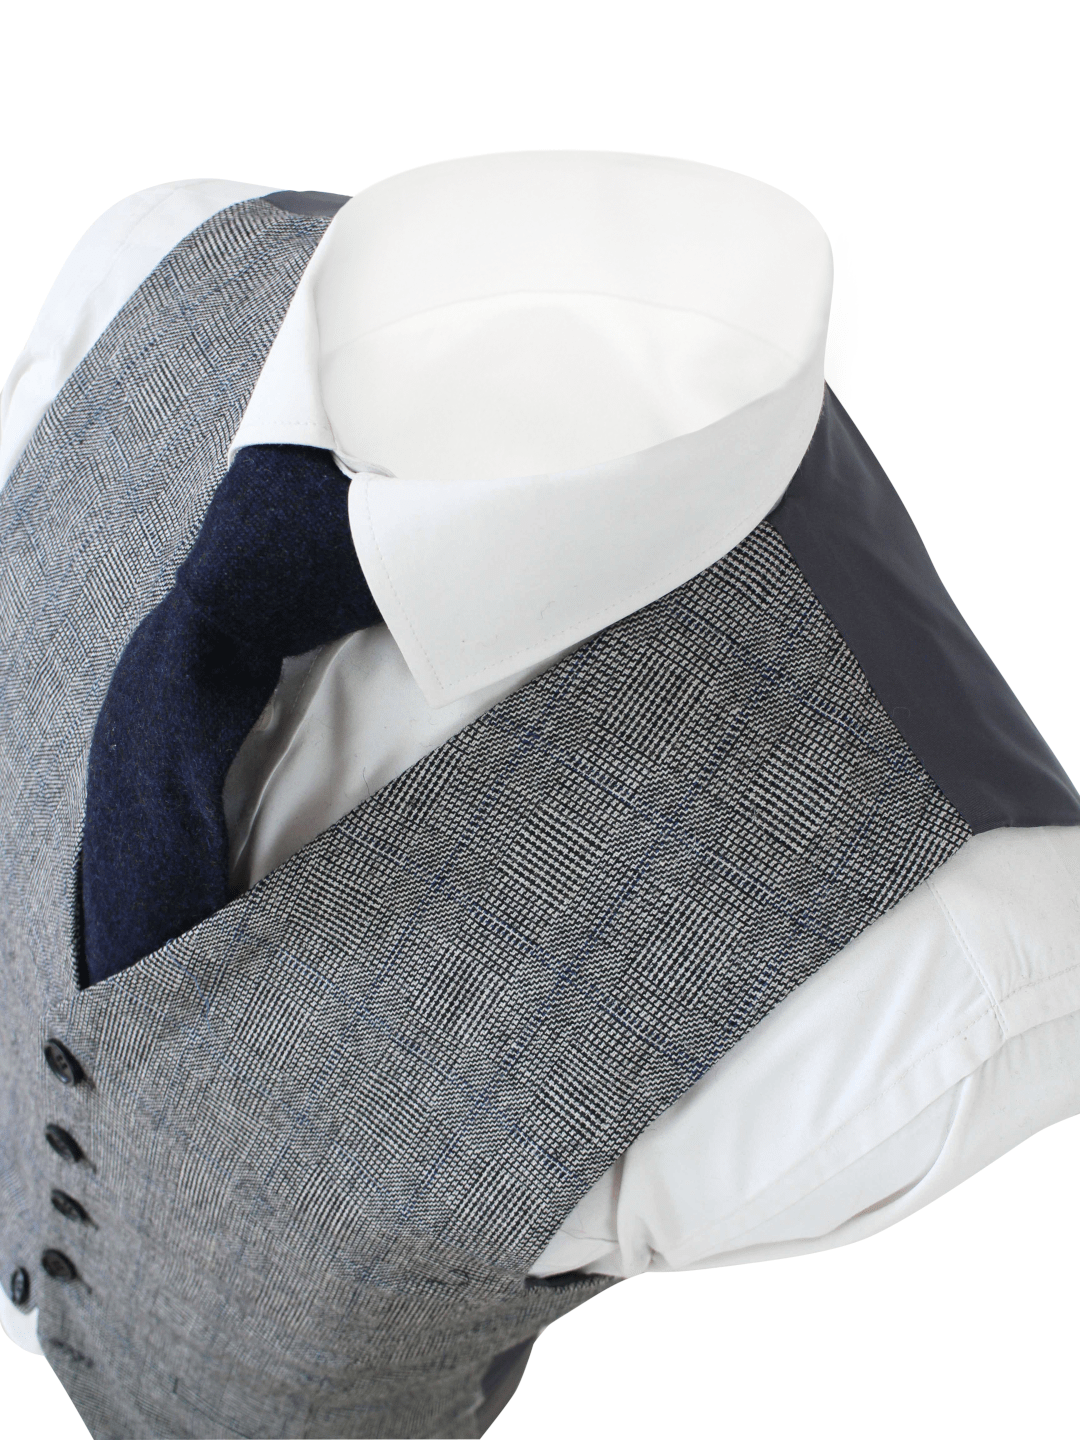 Retro Grey Wool Waistcoat Only USA Clearance